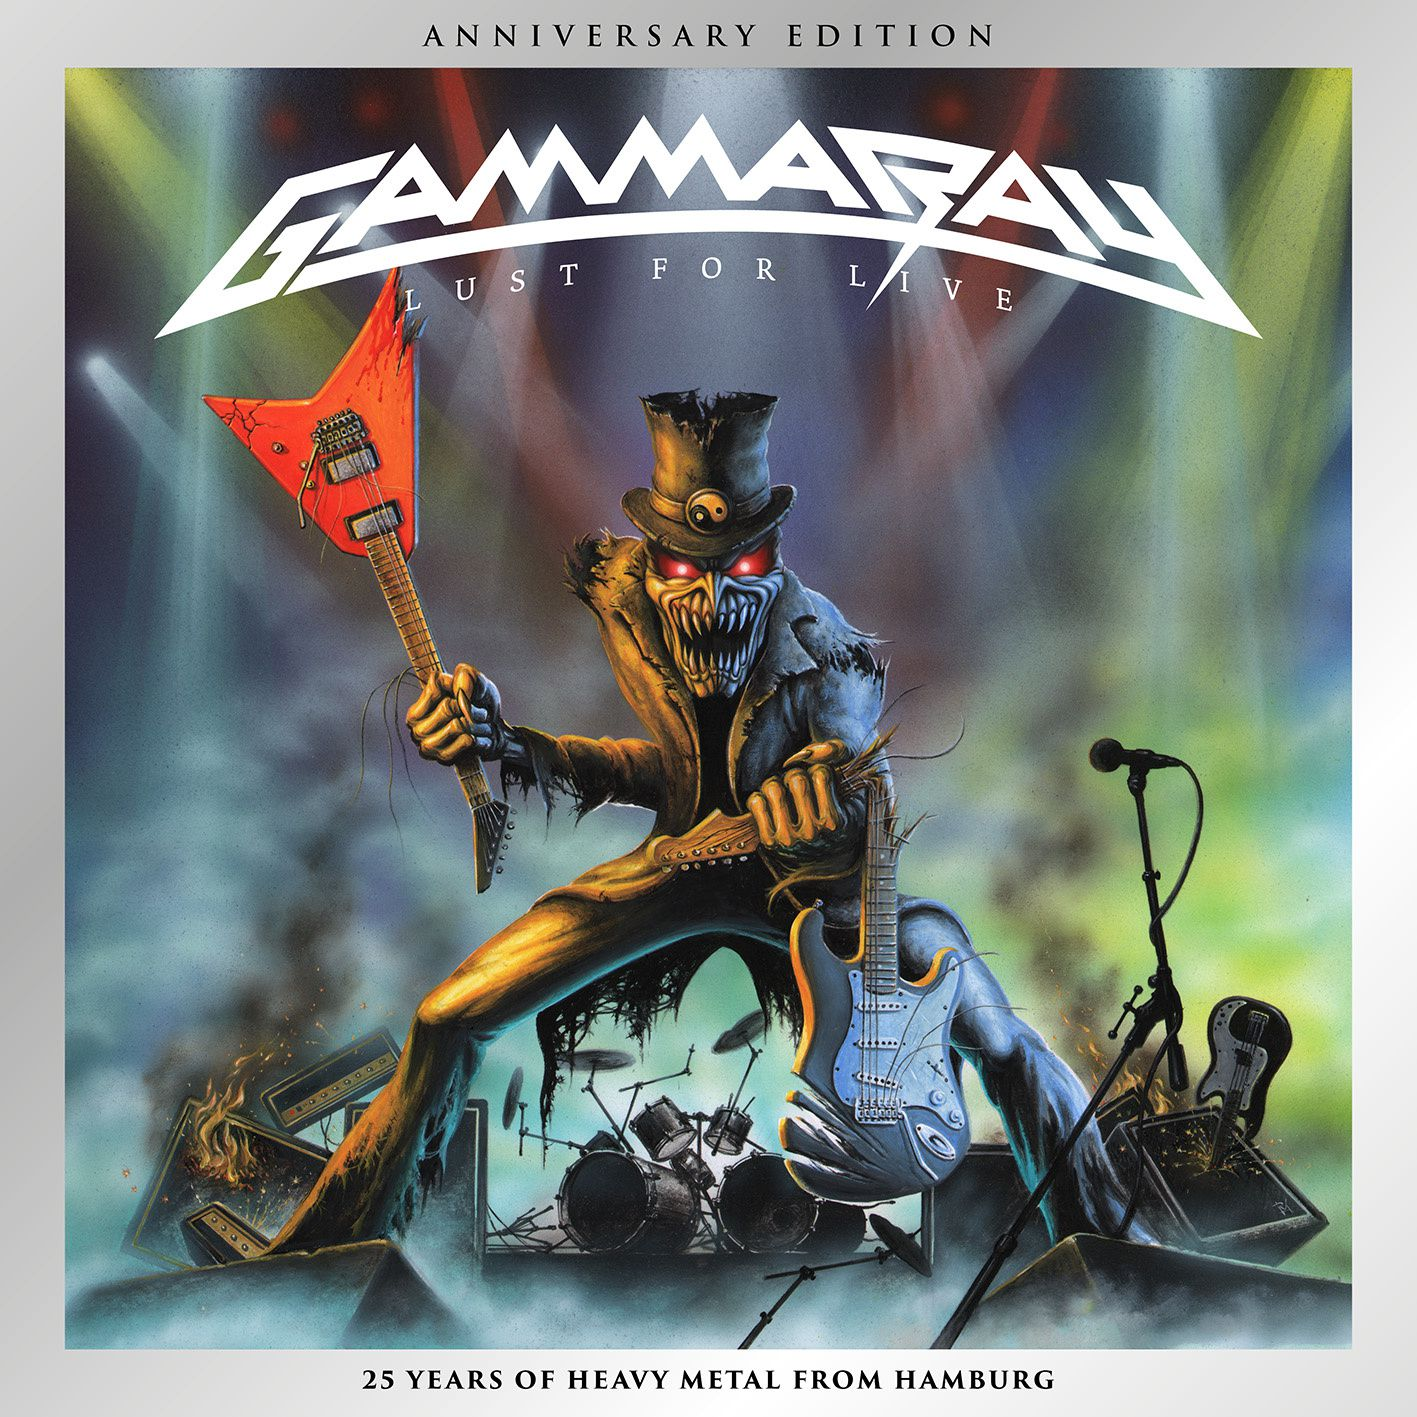 CD review GAMMA RAY &quot&#x3B;Lust For Live&quot&#x3B; (Anniversary Edition)